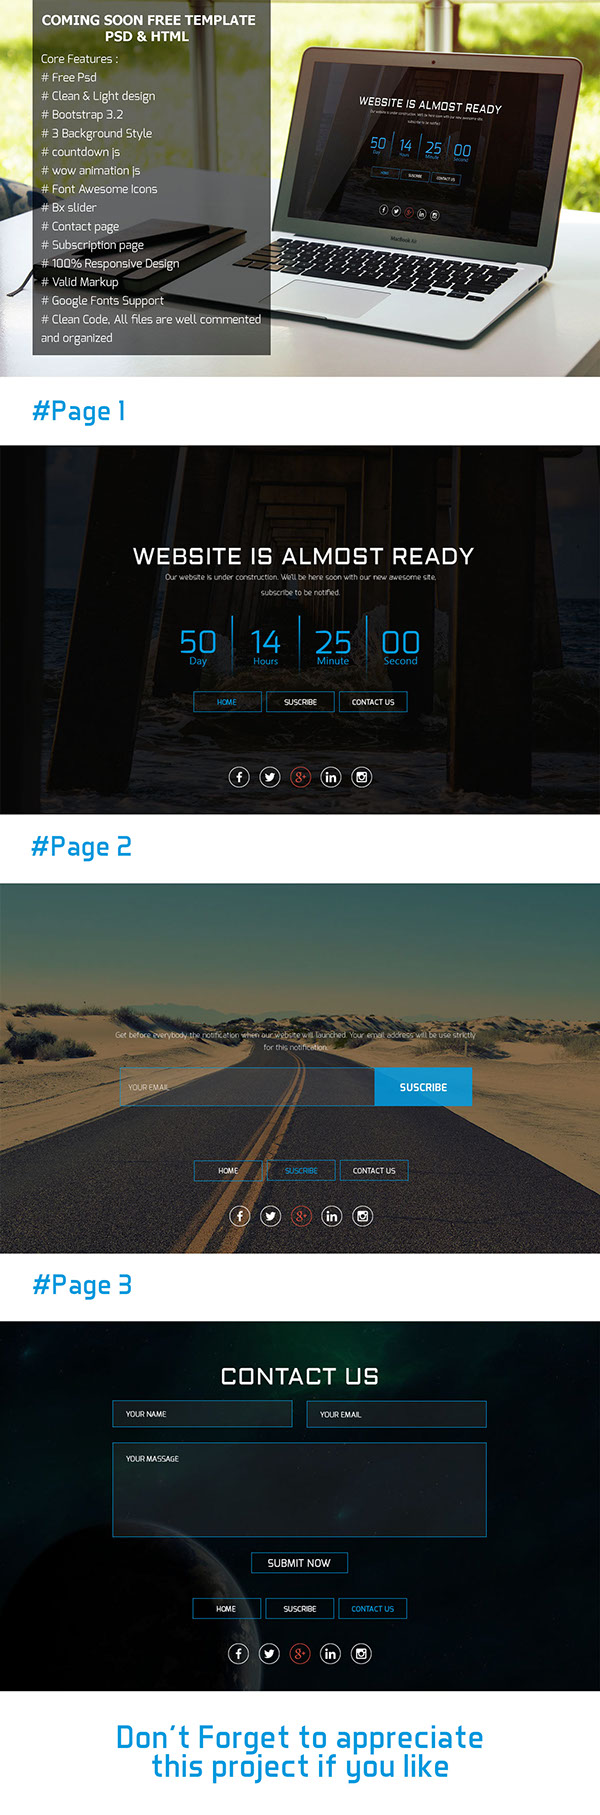 Coming Soon PSD & HTML Template (Freebie)